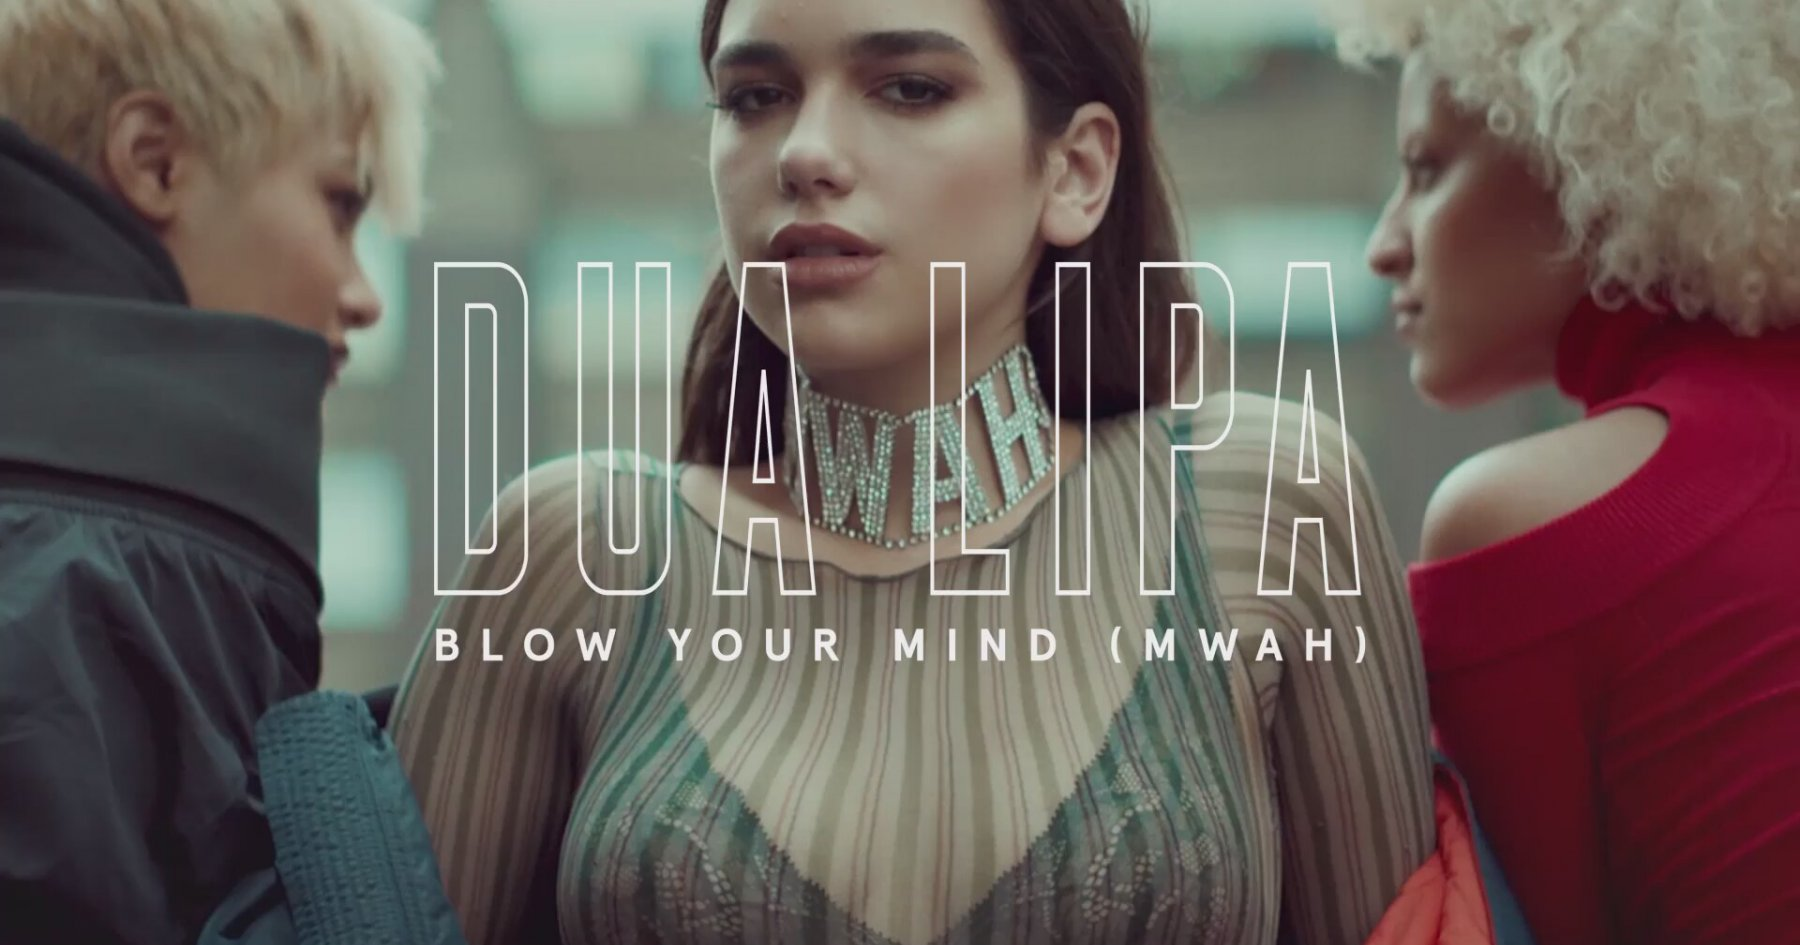 Arti Lirik Lagu Blow Your Mind - Dua Lipa